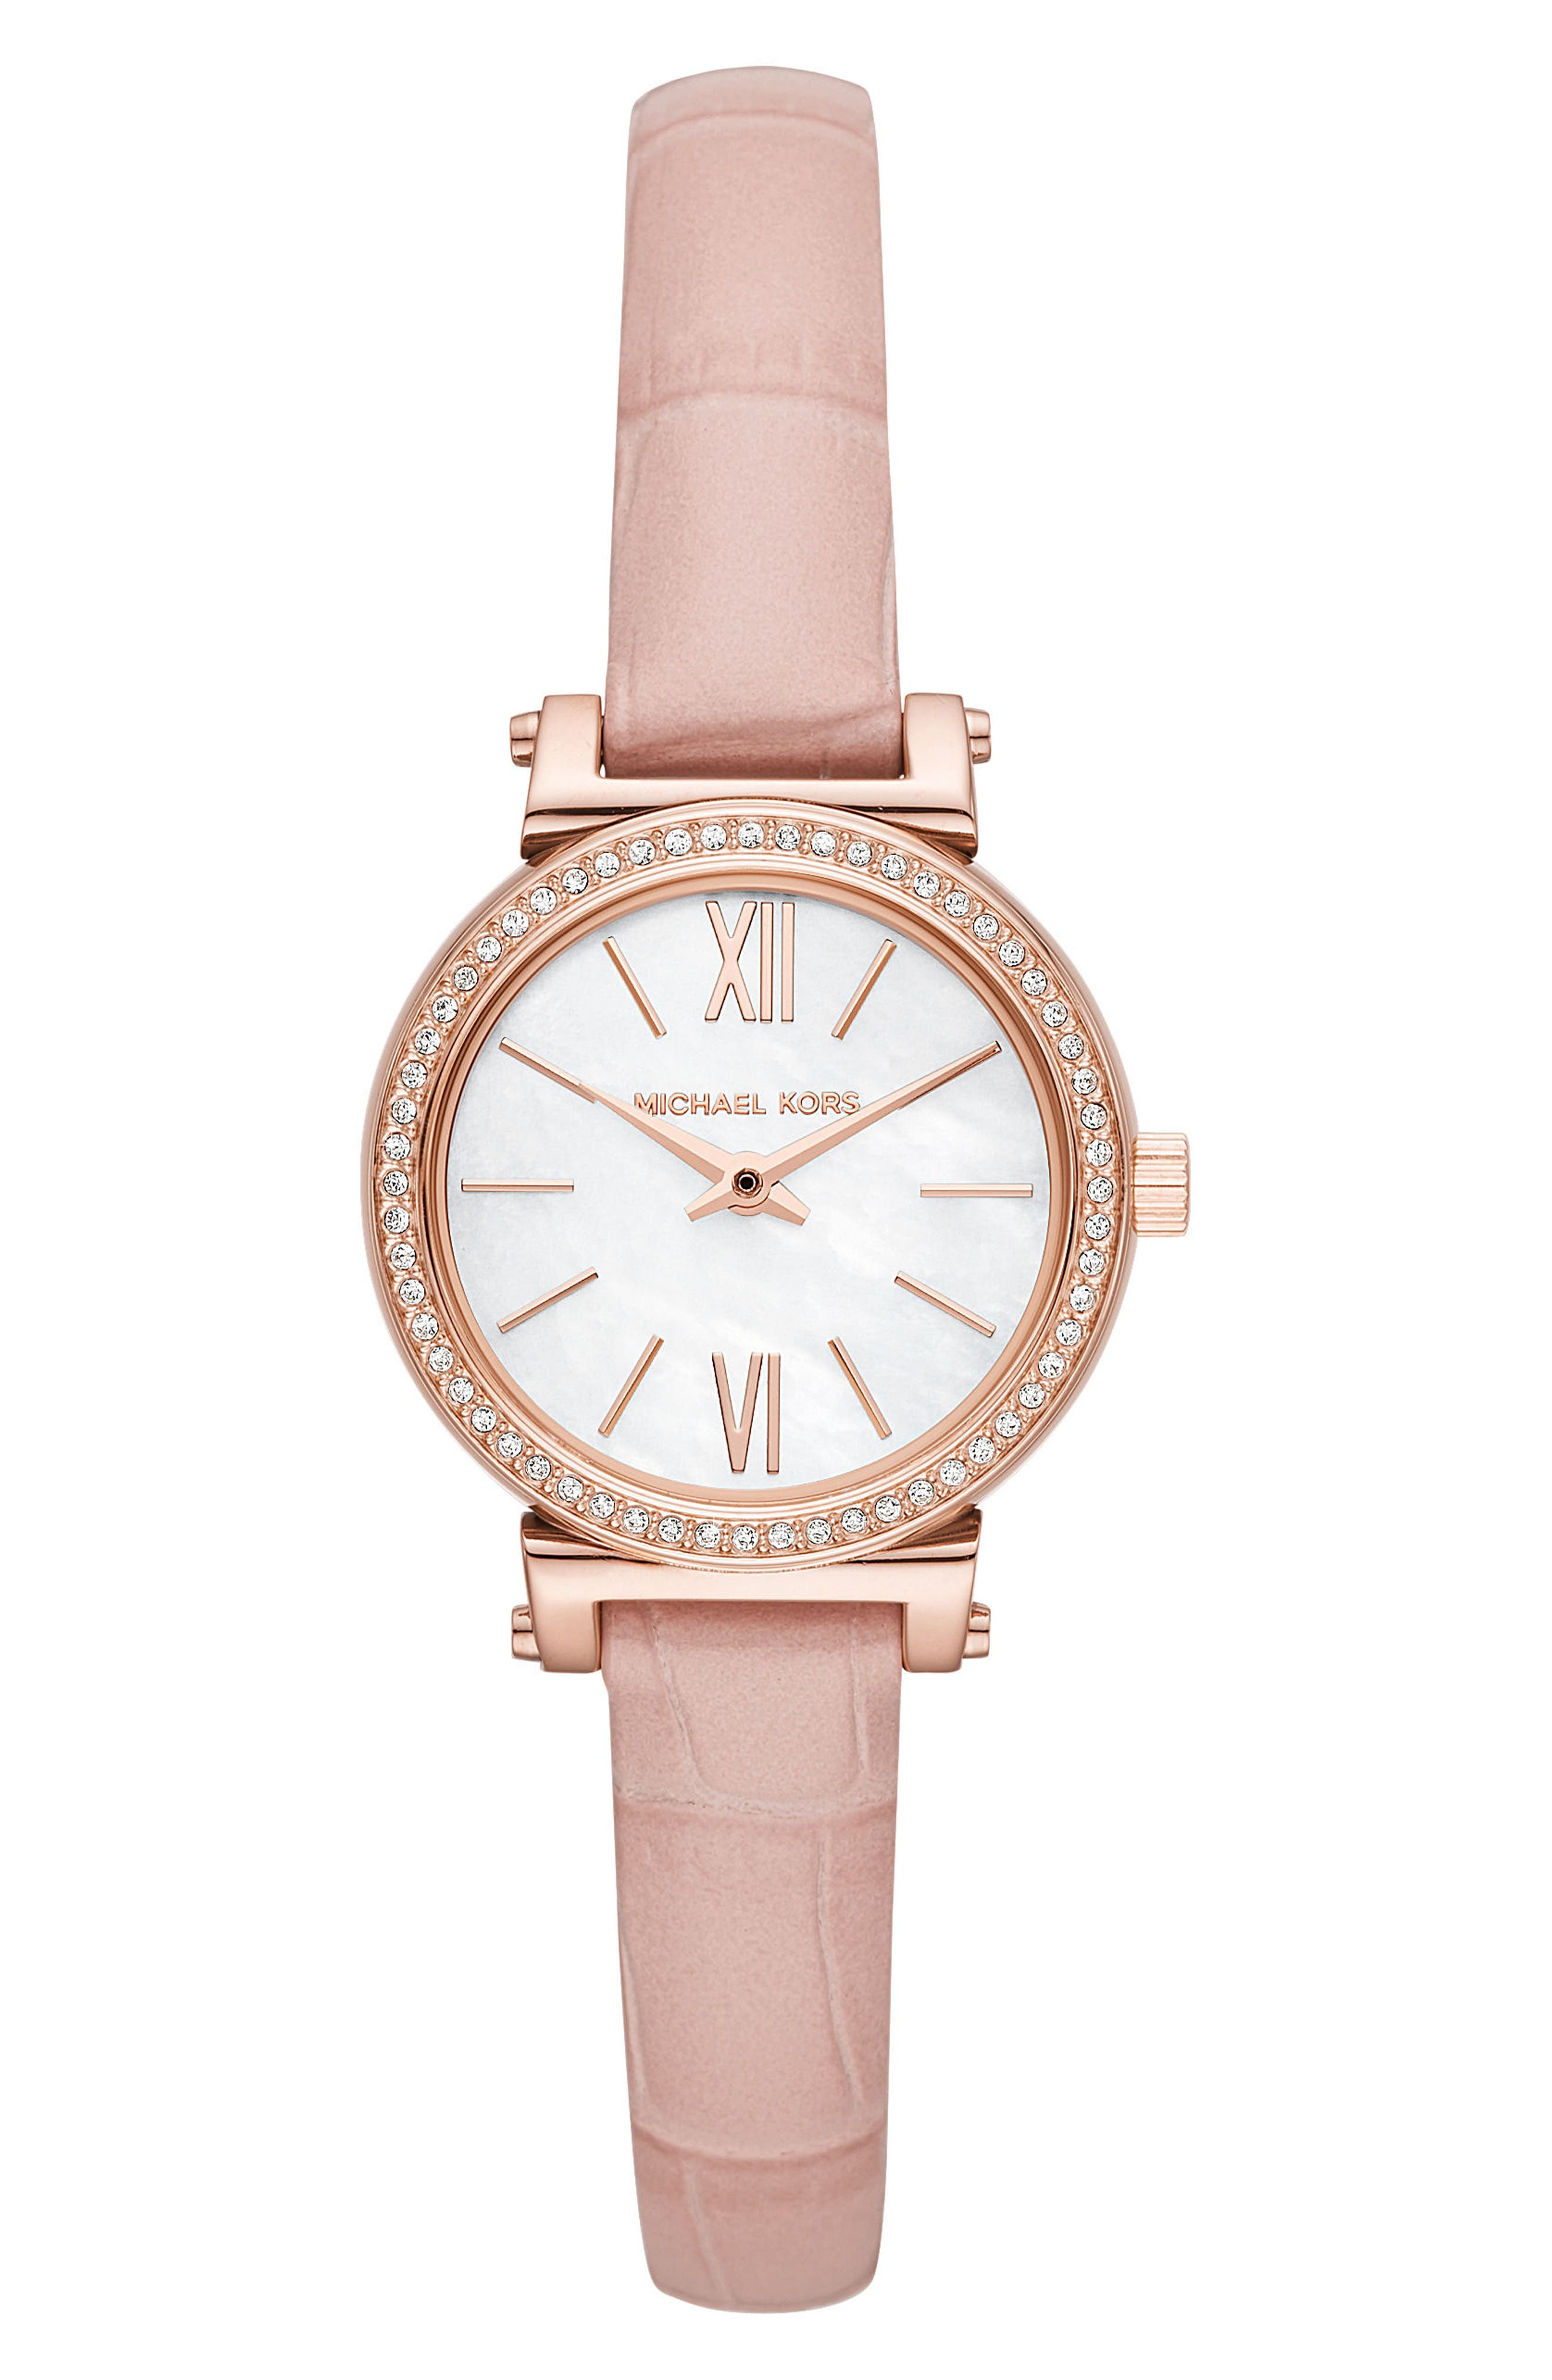 Sofie Crystal Leather Strap Watch, 26mm,                             Main thumbnail 1, color,                             Pink/ Mop/ Rose Gold